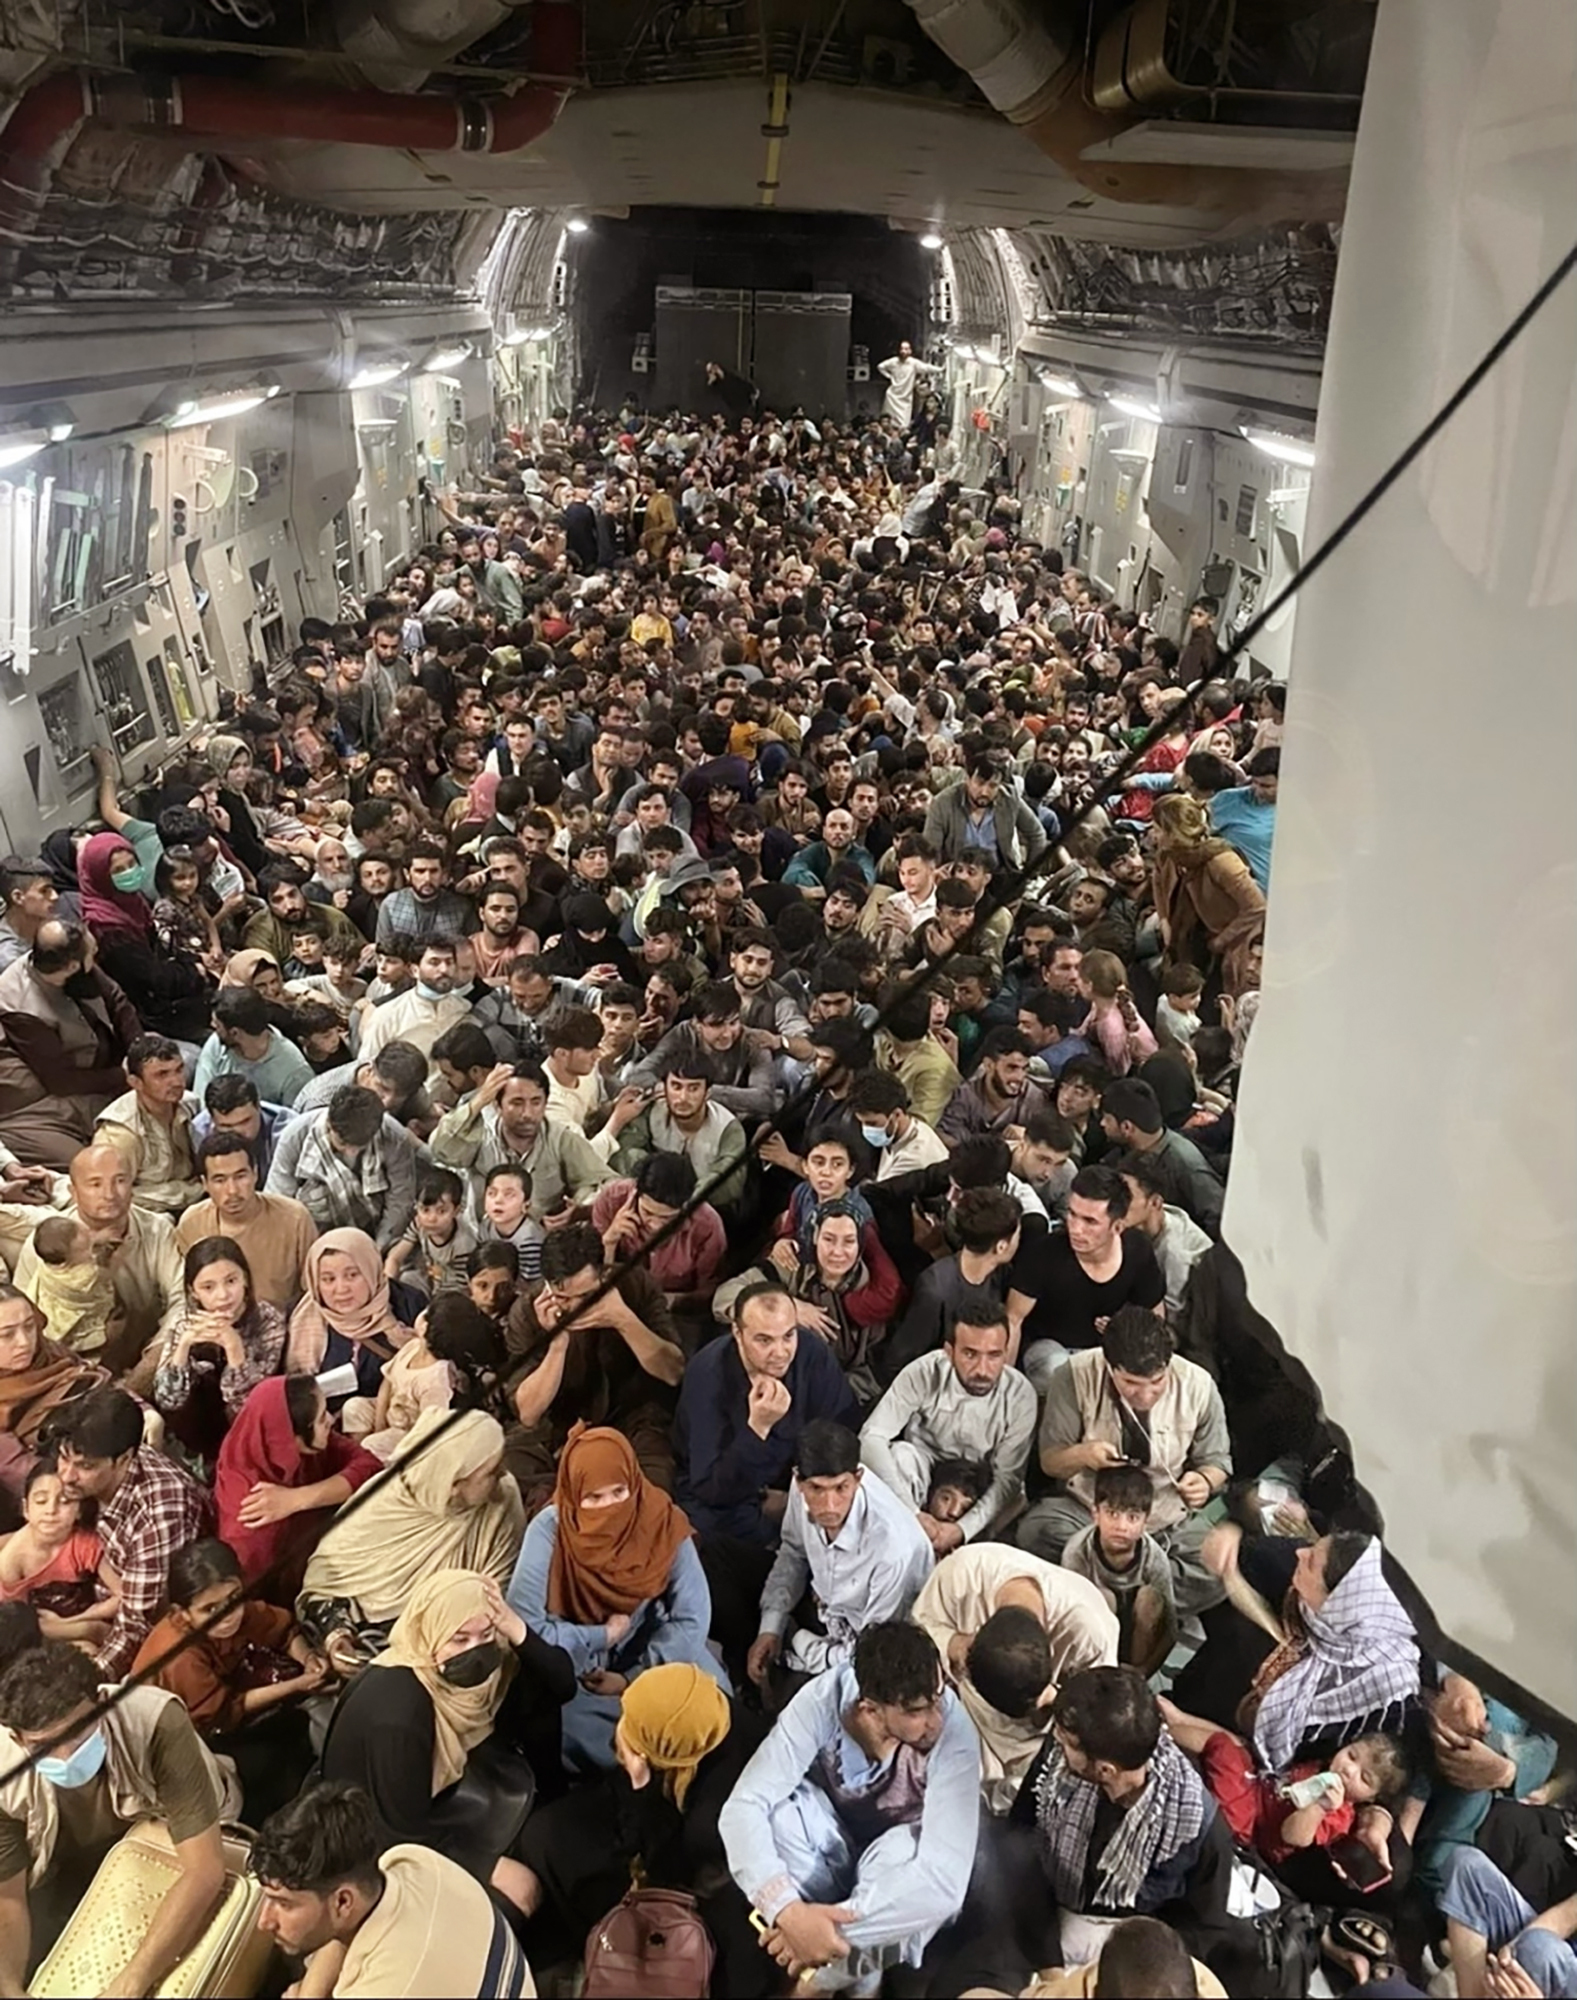 Afghan citizens pack inside a U.S. Air Force plane as they are transported from Hamid Karzai International Airport in Afghanistan.